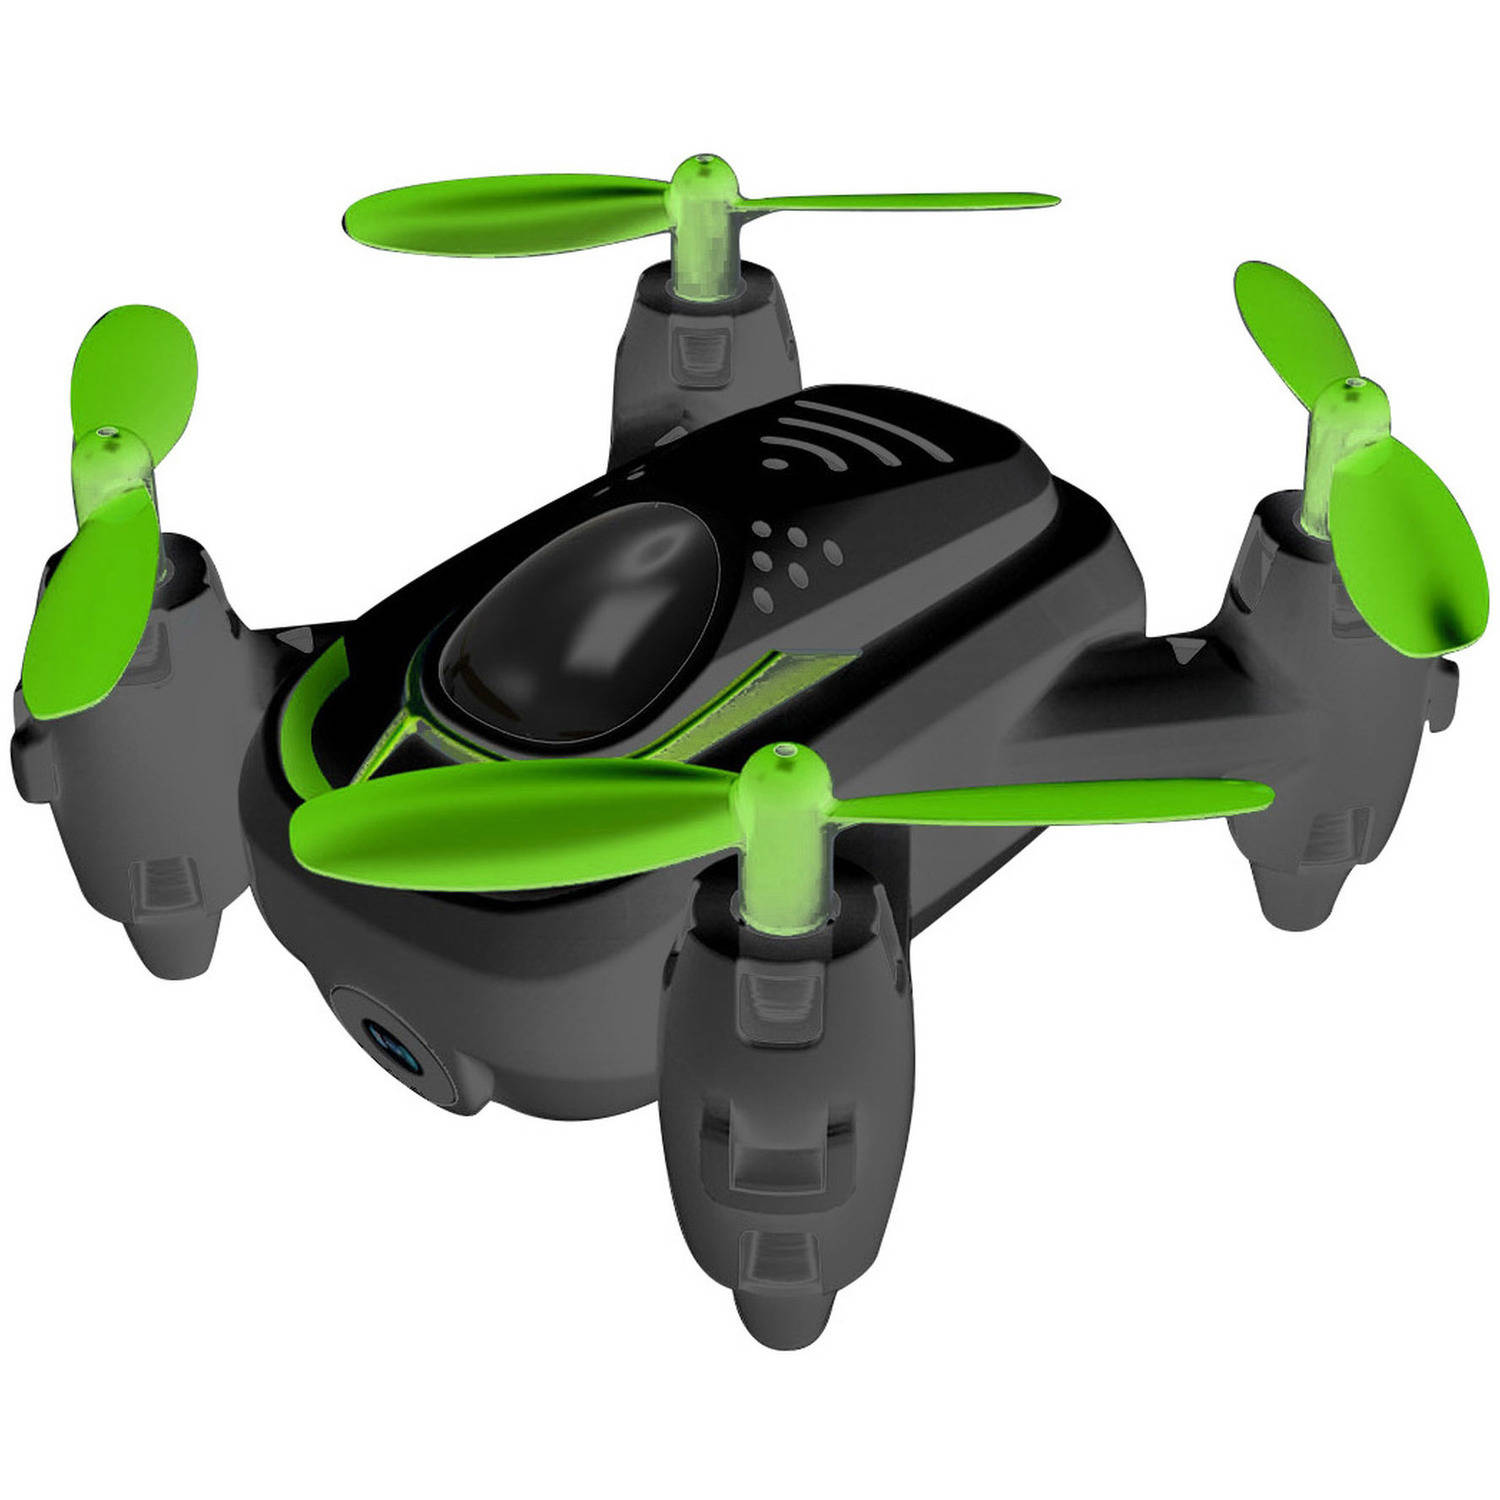 Riviera RC Micro Quad Wi-Fi Drone with 3D App, Black